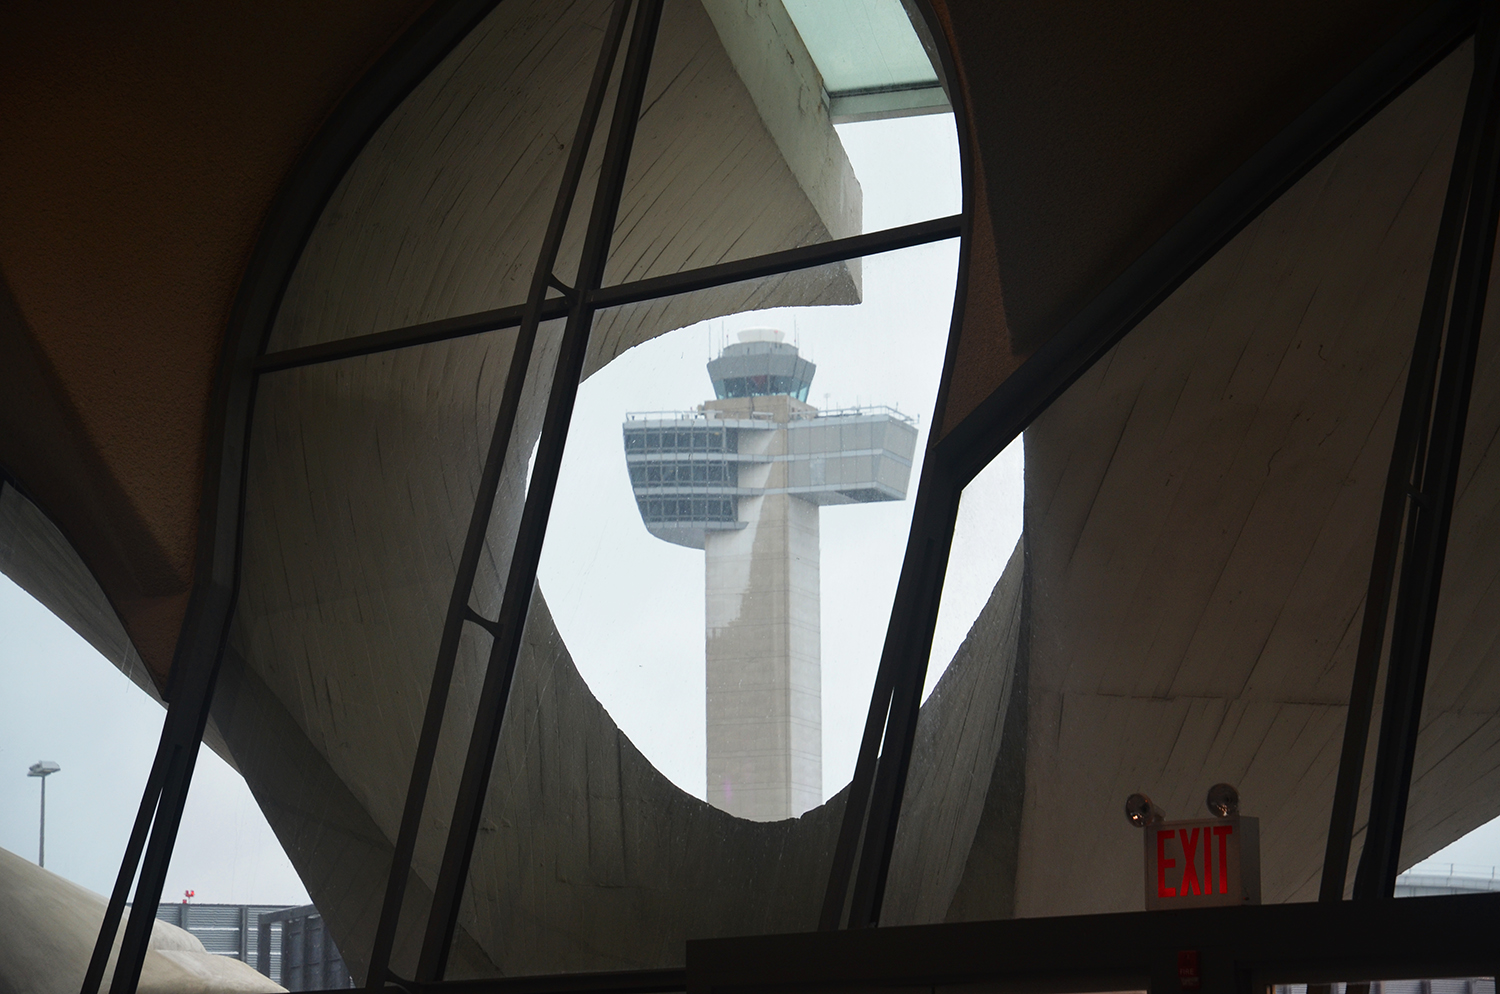 The JFK control tower as seen from the TWA Flight Center in October 2014. Photograph by Evan Bindelglass.